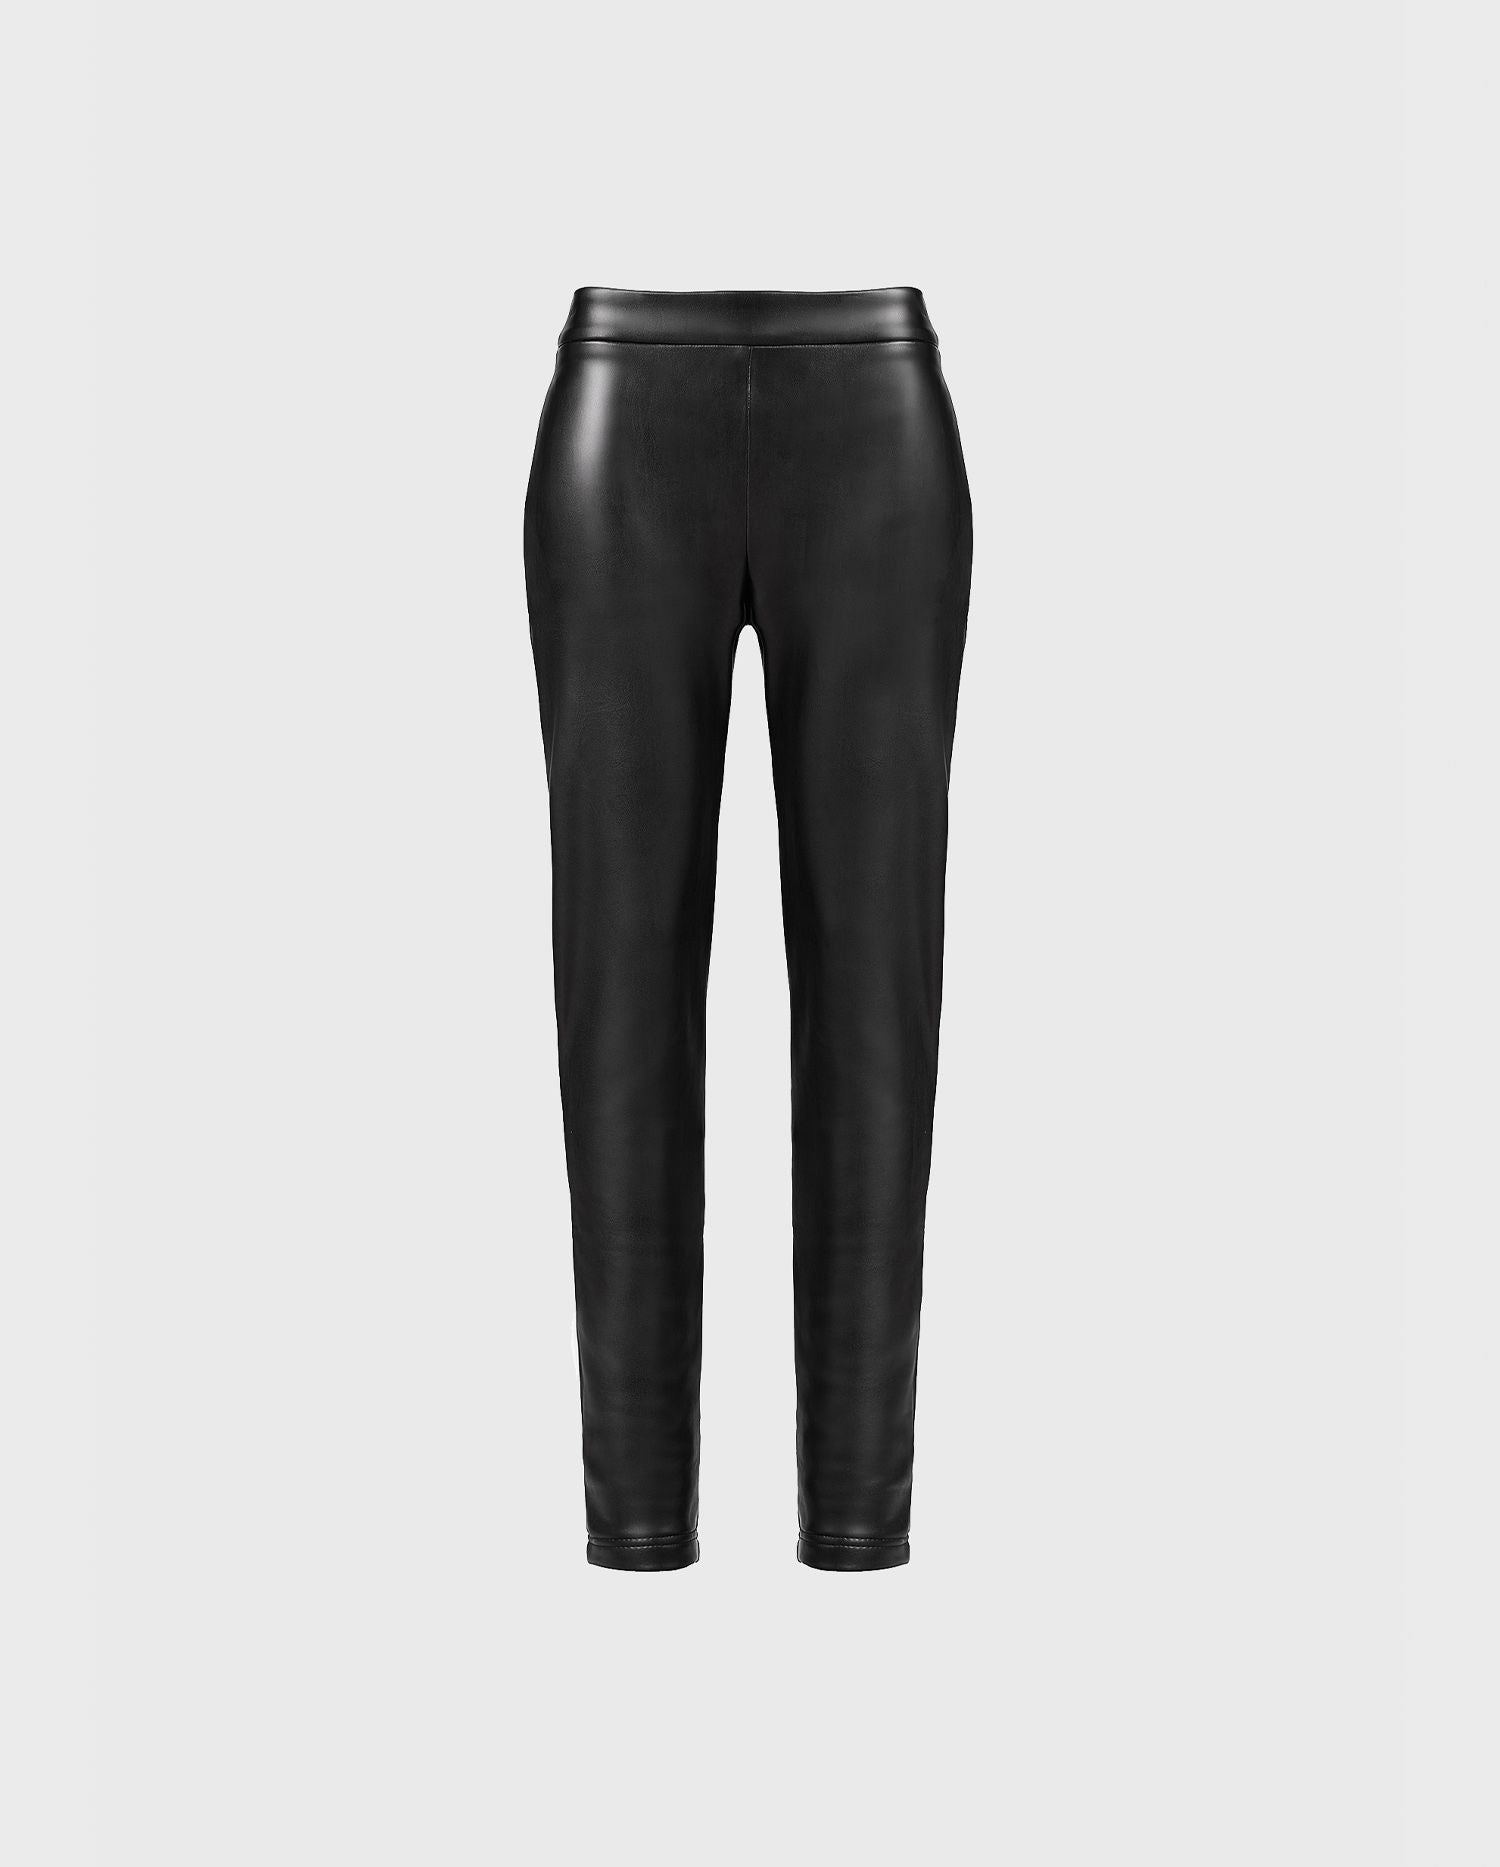 Add a chic and feminine edge to your look with the leather FANDY leggings